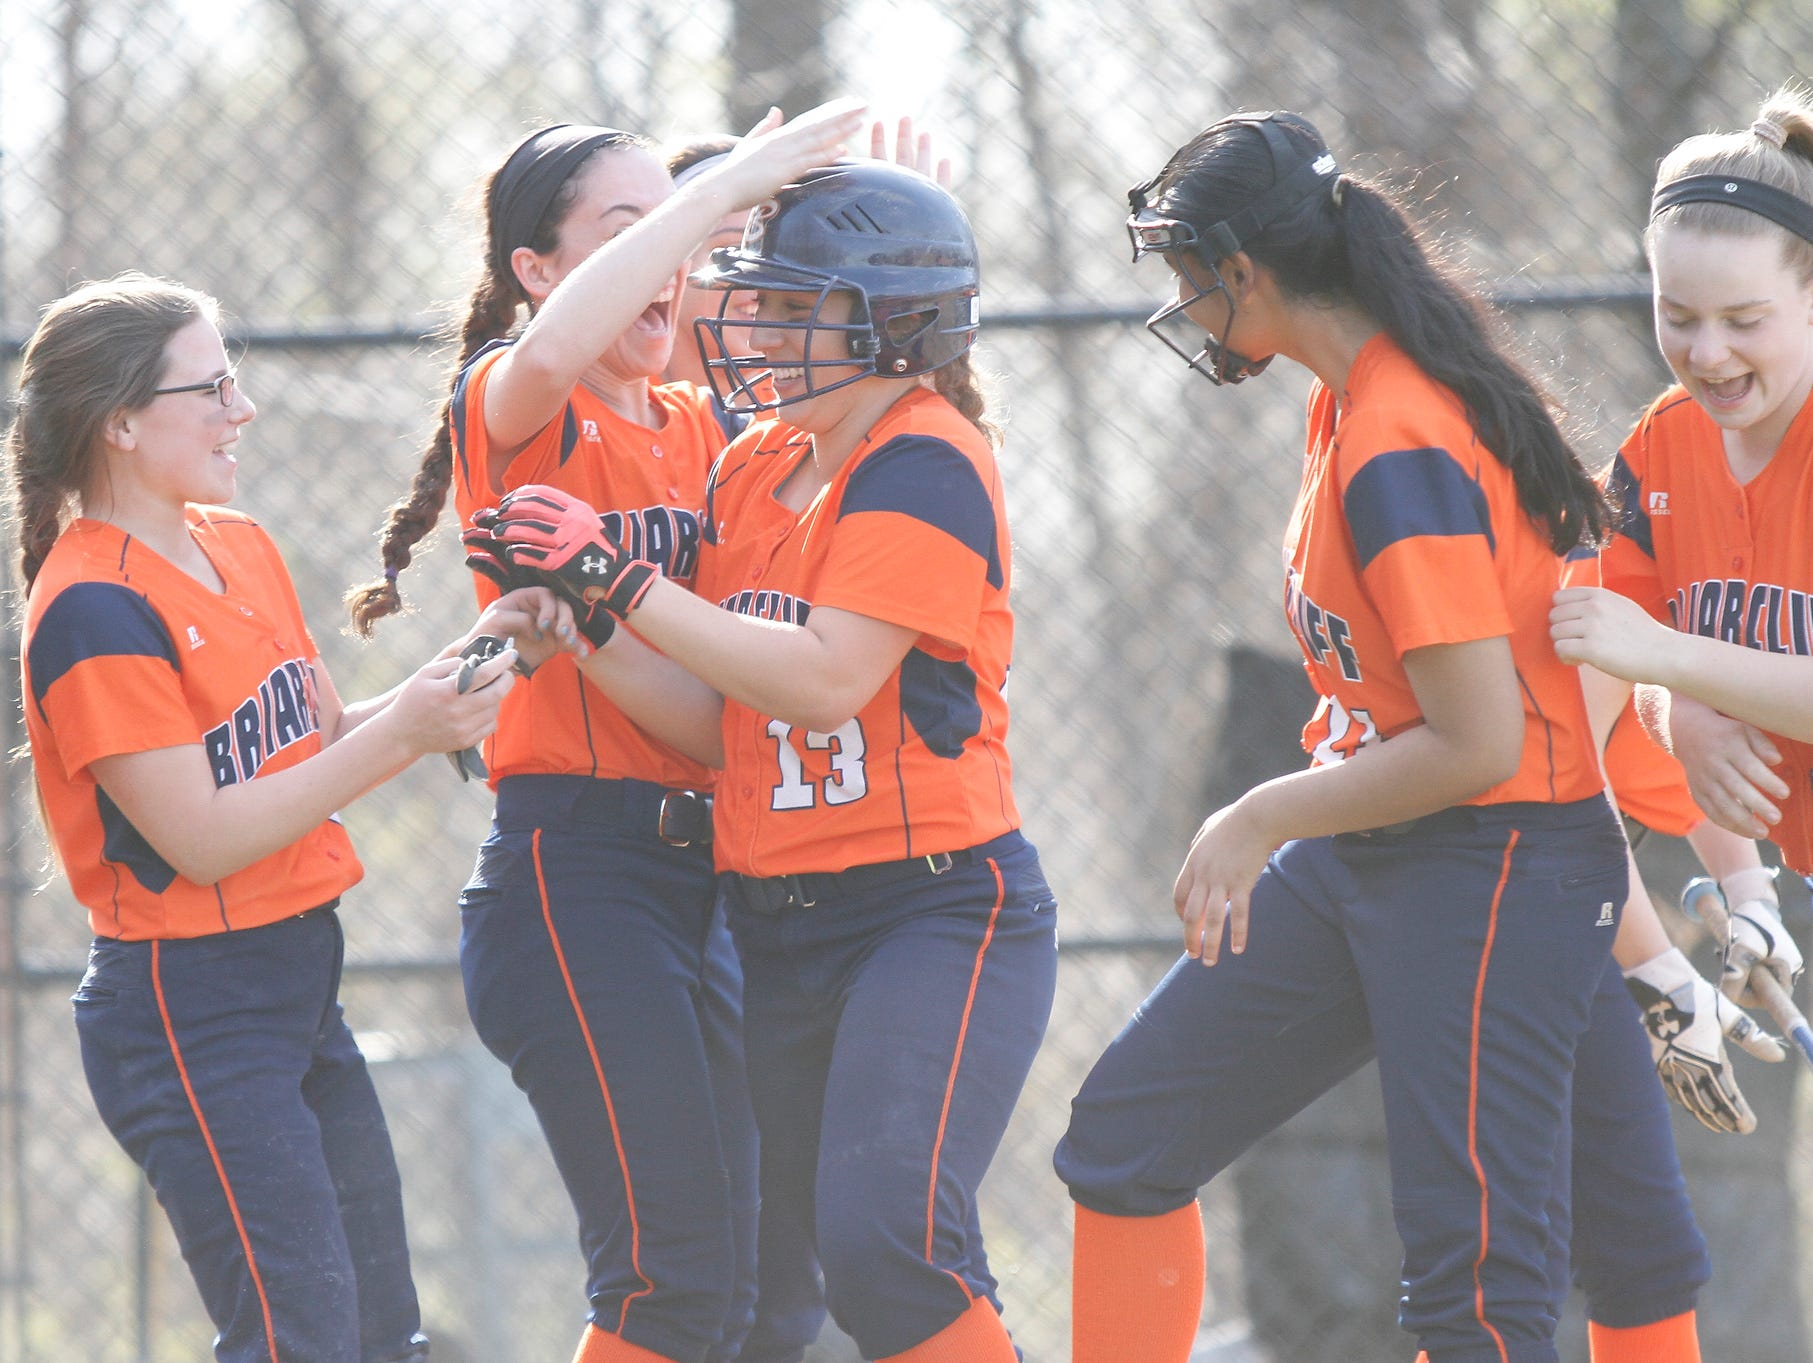 Westlake tops Briarcliff 14-7 in a softball game at Westlake High School on Thursday, April 21, 2016.